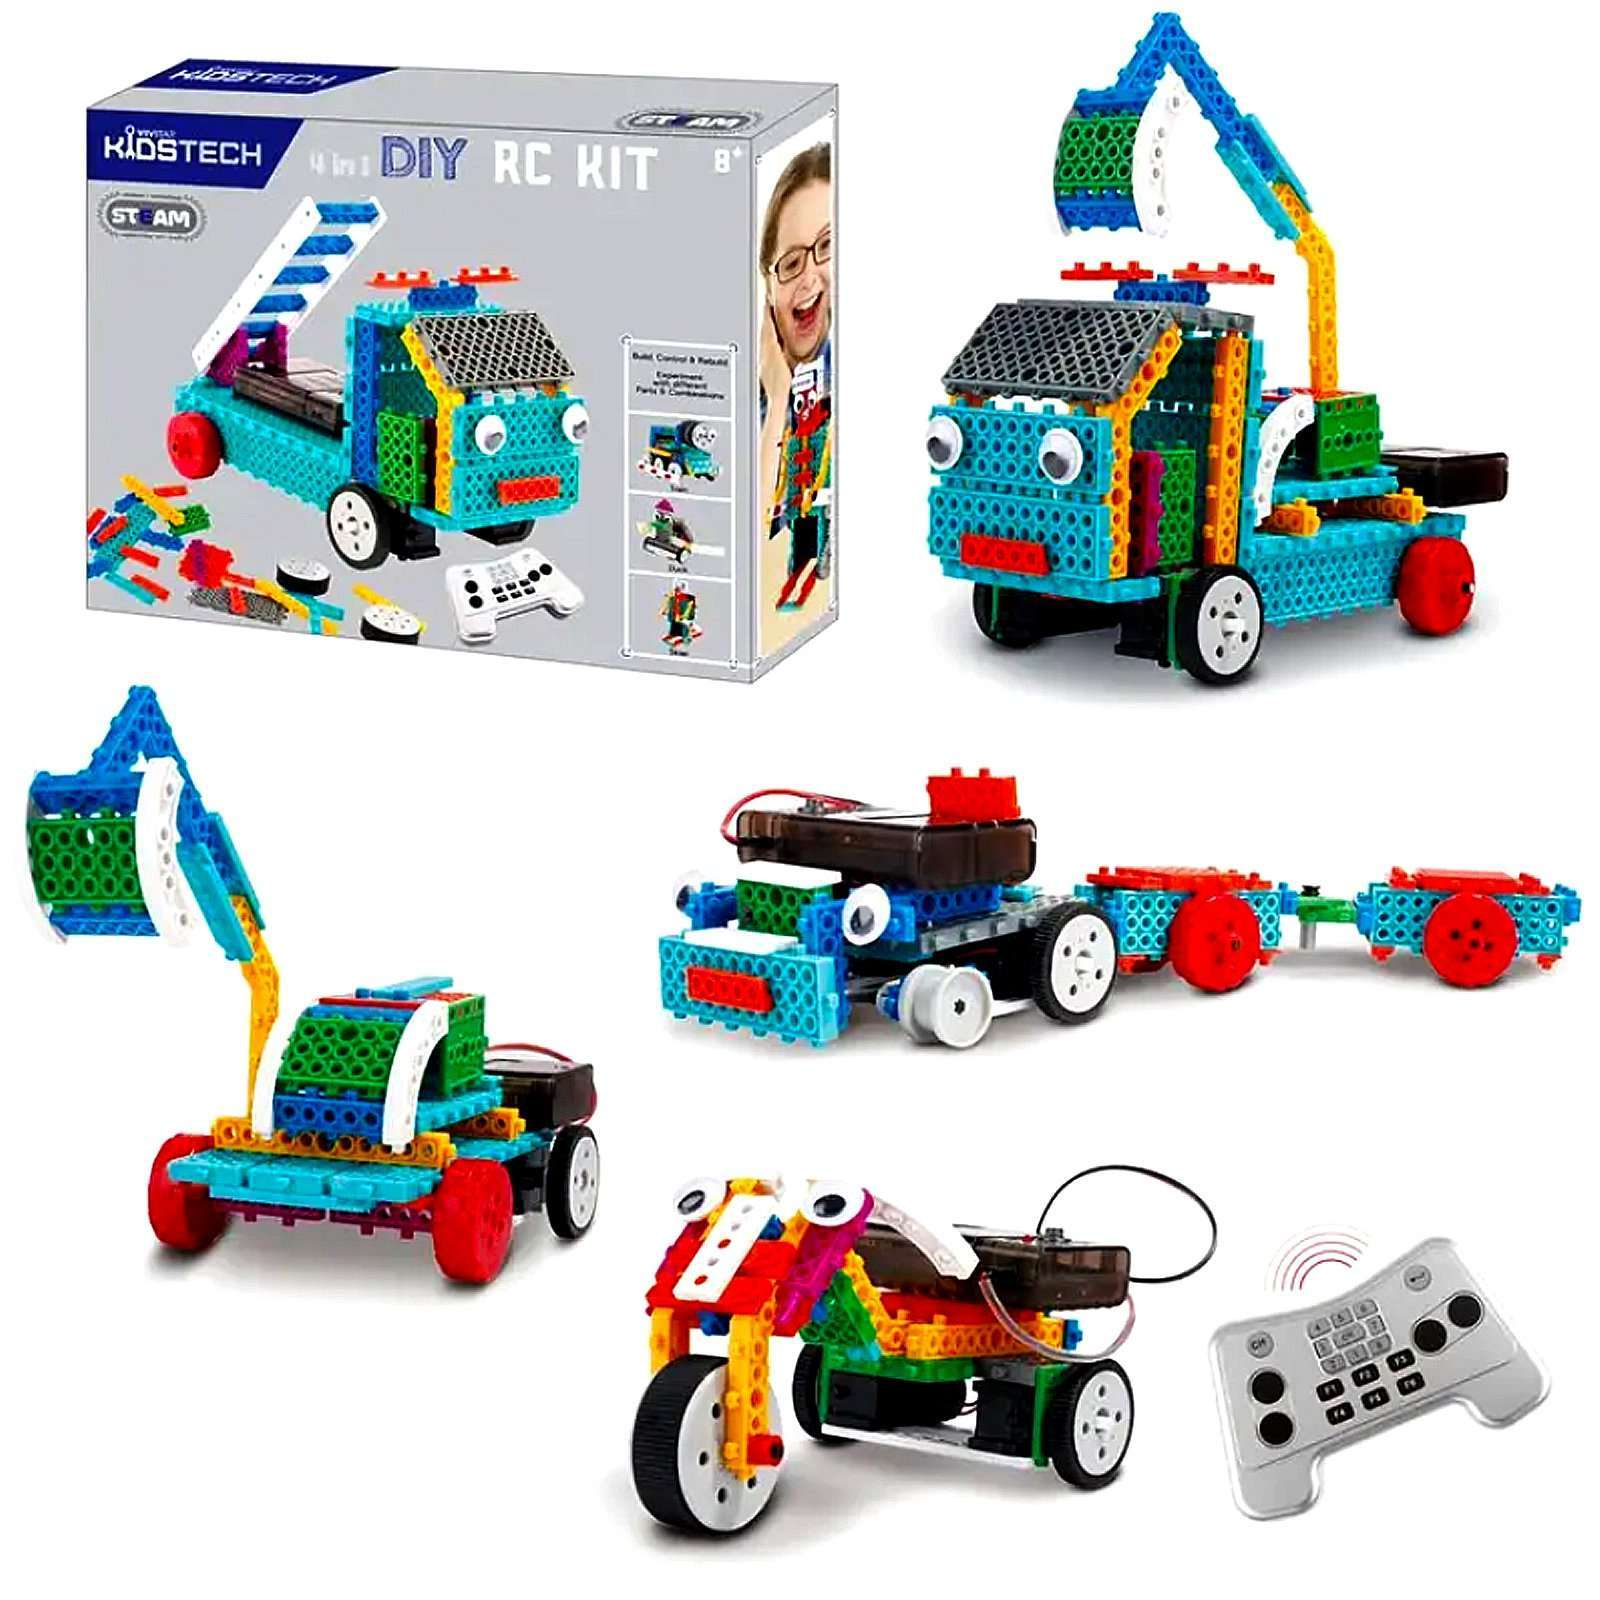 Vivitar KidsTech 4-in-1 RC Construction Vehicles Kit